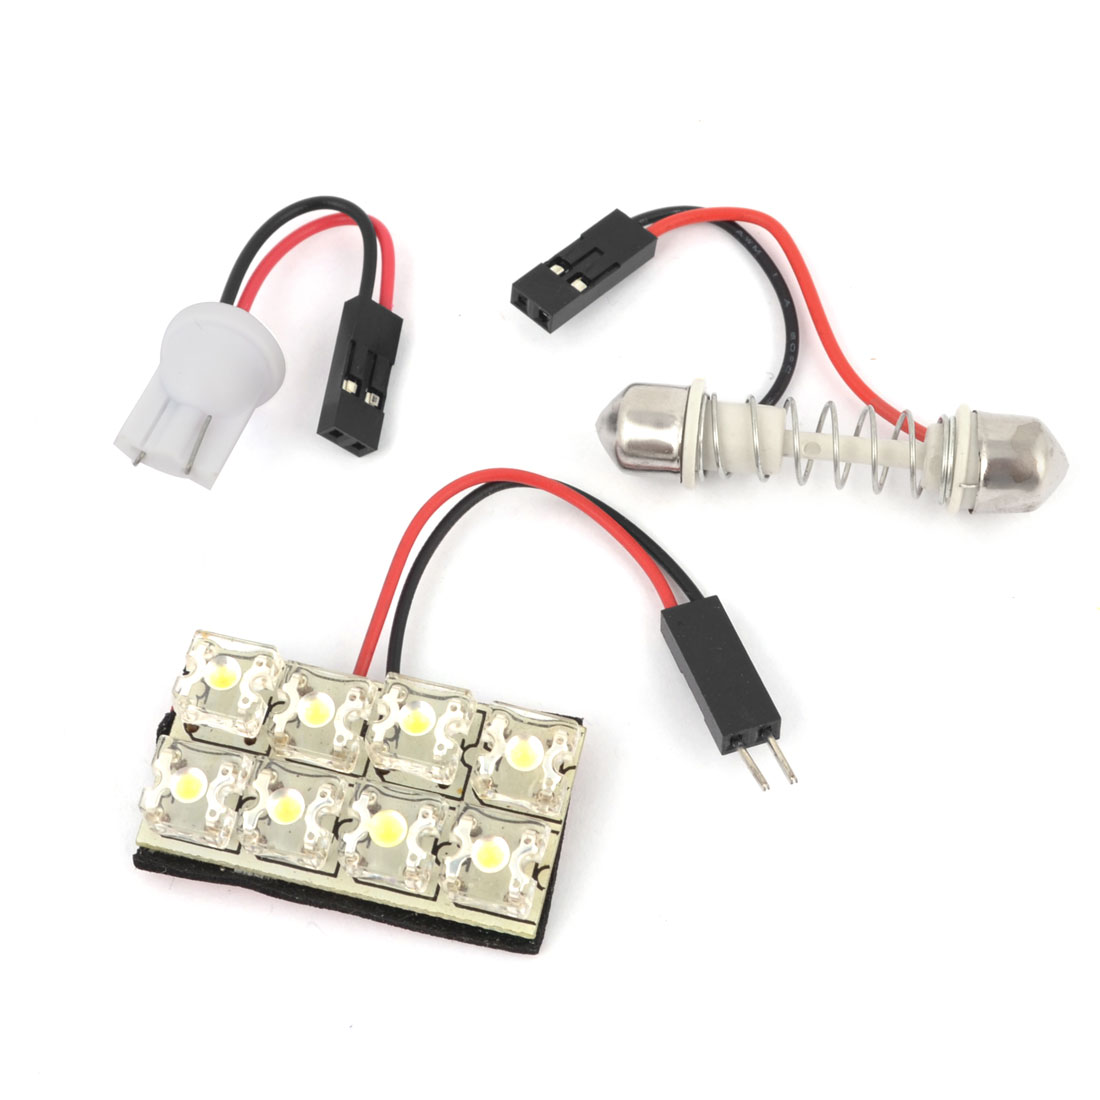 Internal Car Adhesive White 8-LED Panel Roof Dome Light w T10 Festoon Adapter